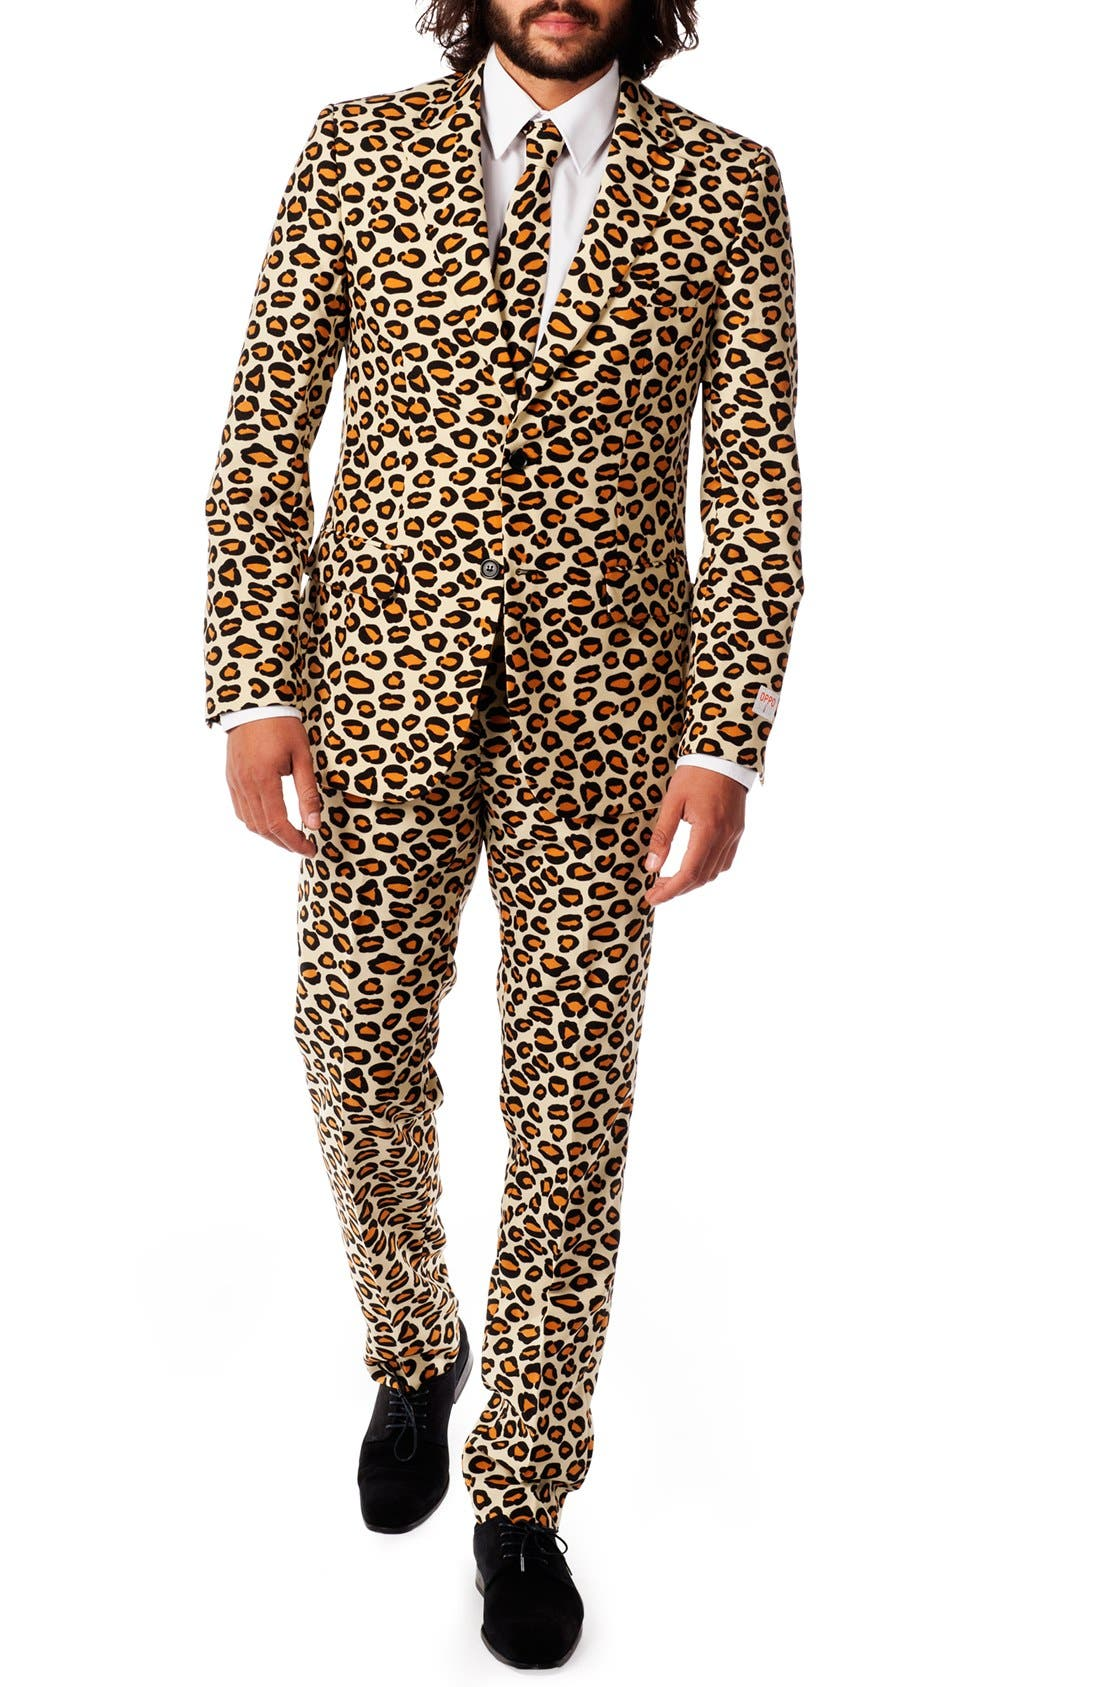 OPPOSUITS 'The Jag' Trim Fit Two-Piece Suit with